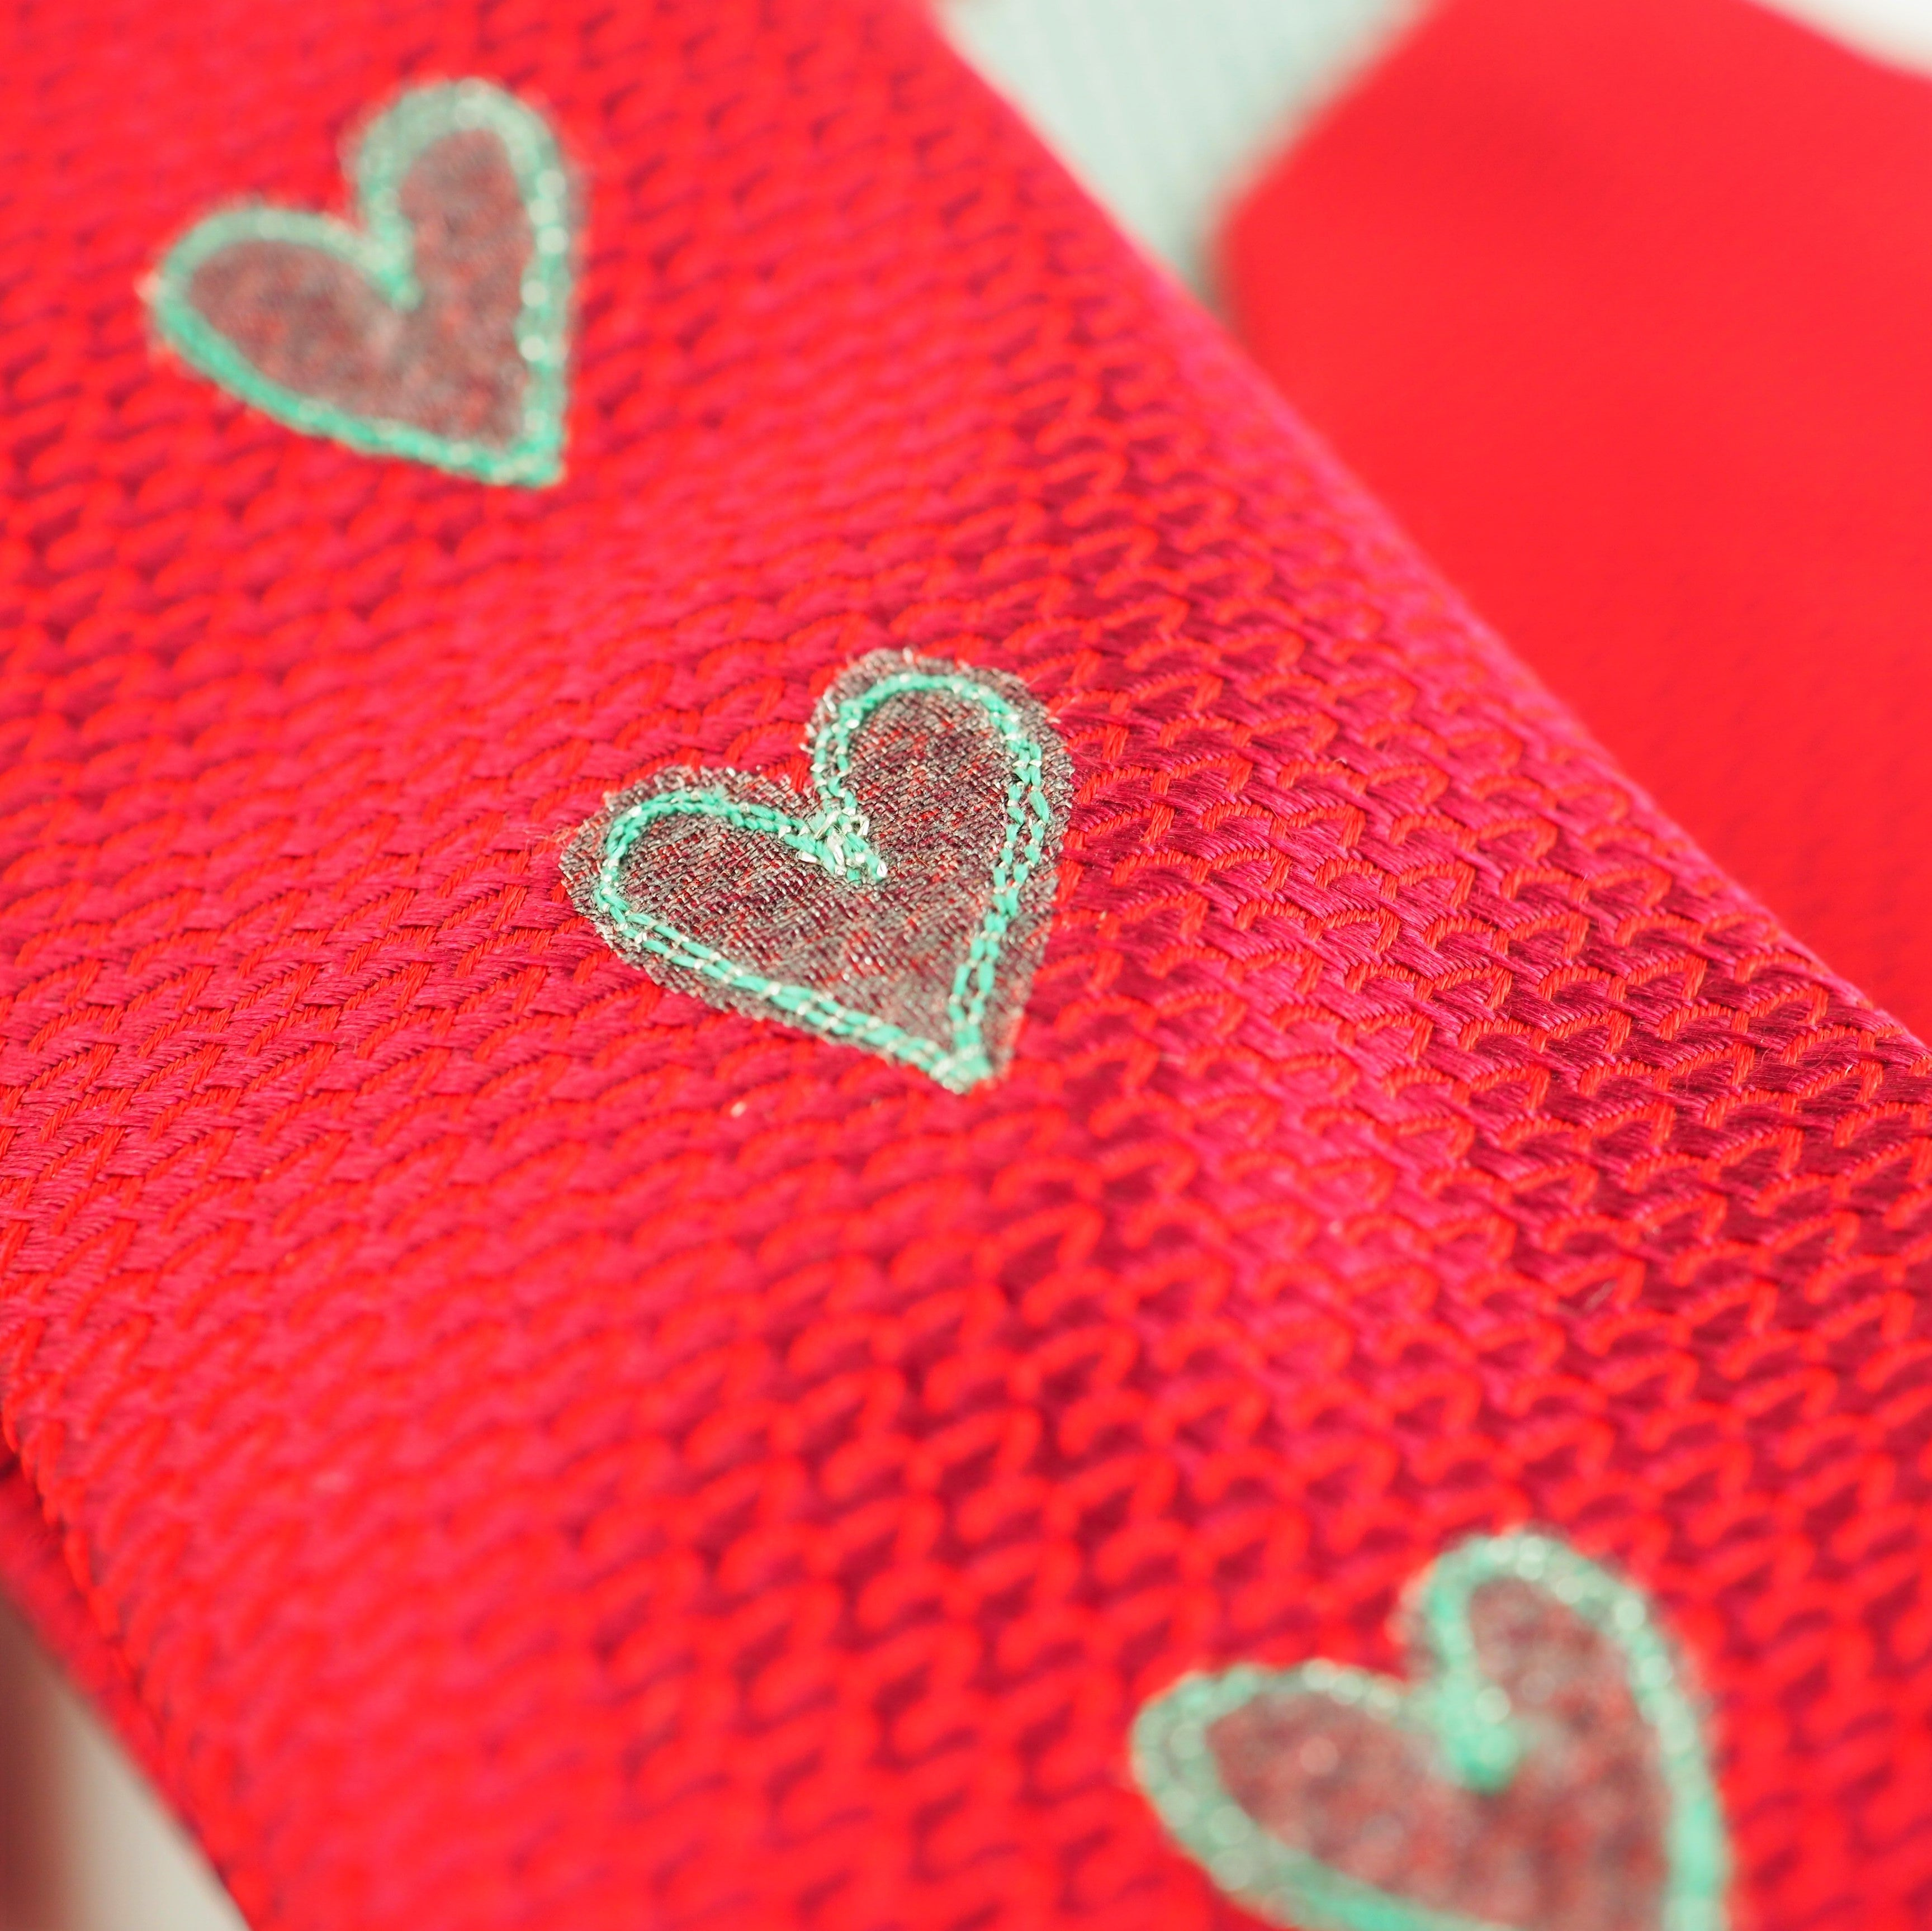 Beresford, Sarah – Reptile Red Tie With Hearts | Sarah Beresford | Primavera Gallery